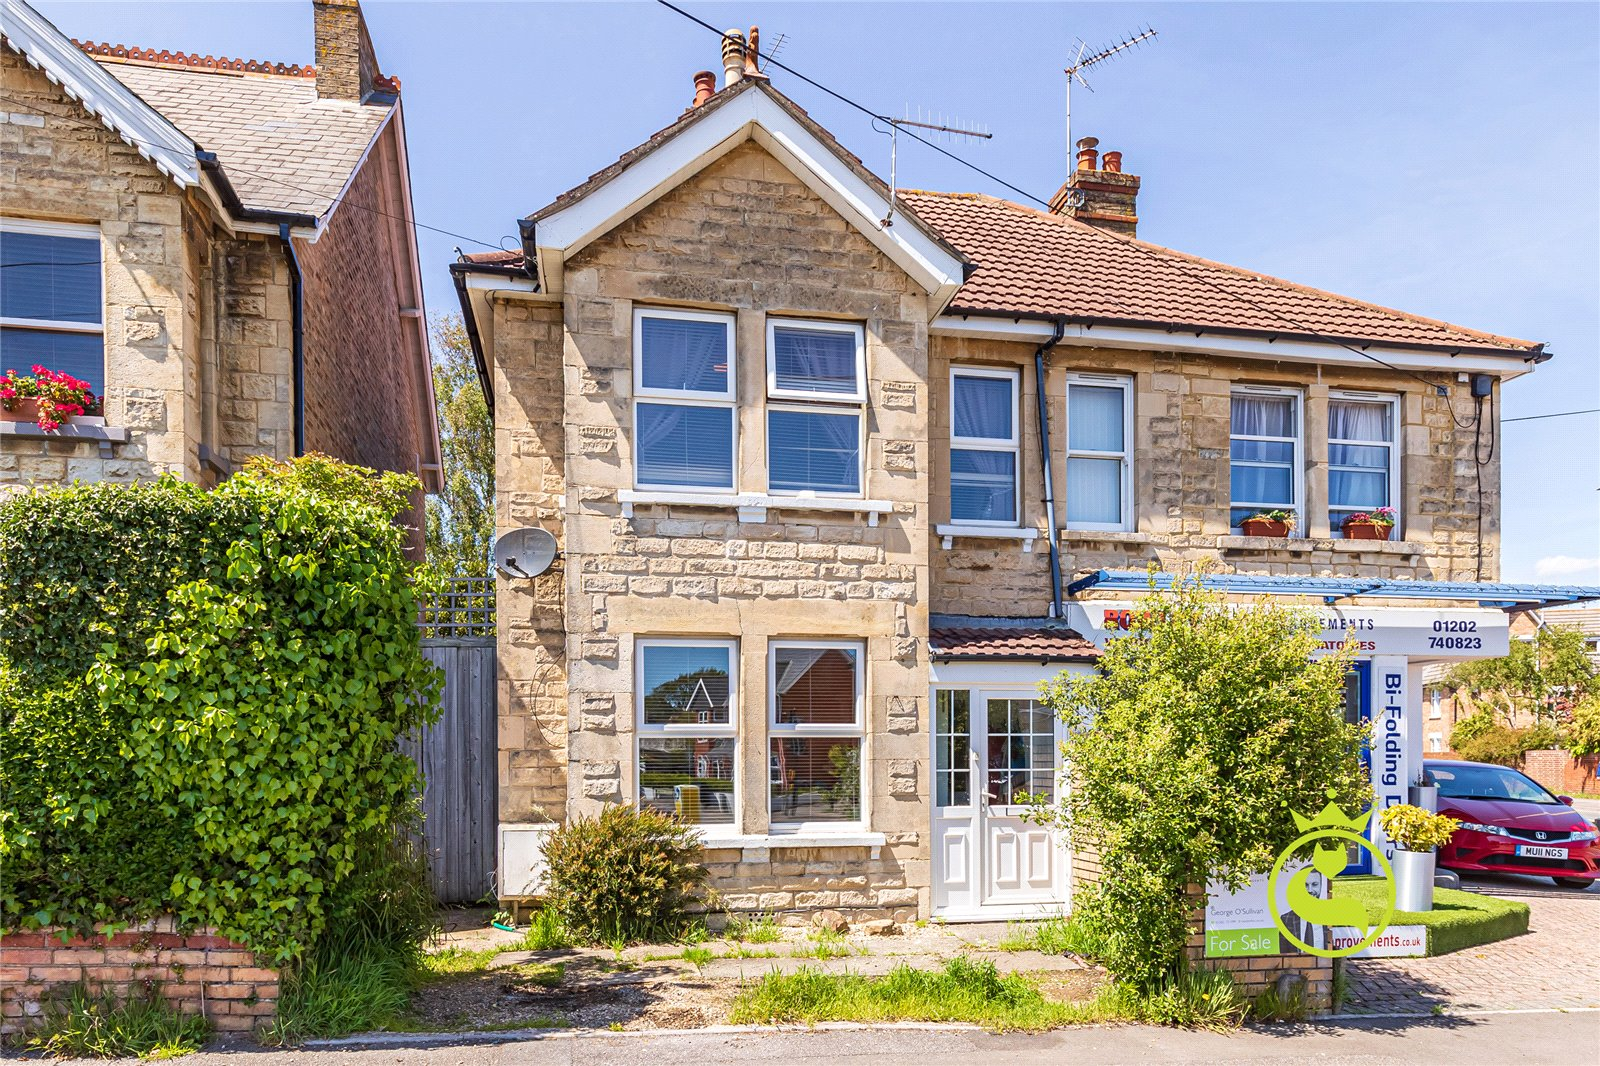 3 bed house for sale in Whitefield Road, Whitecliff - Property Image 1